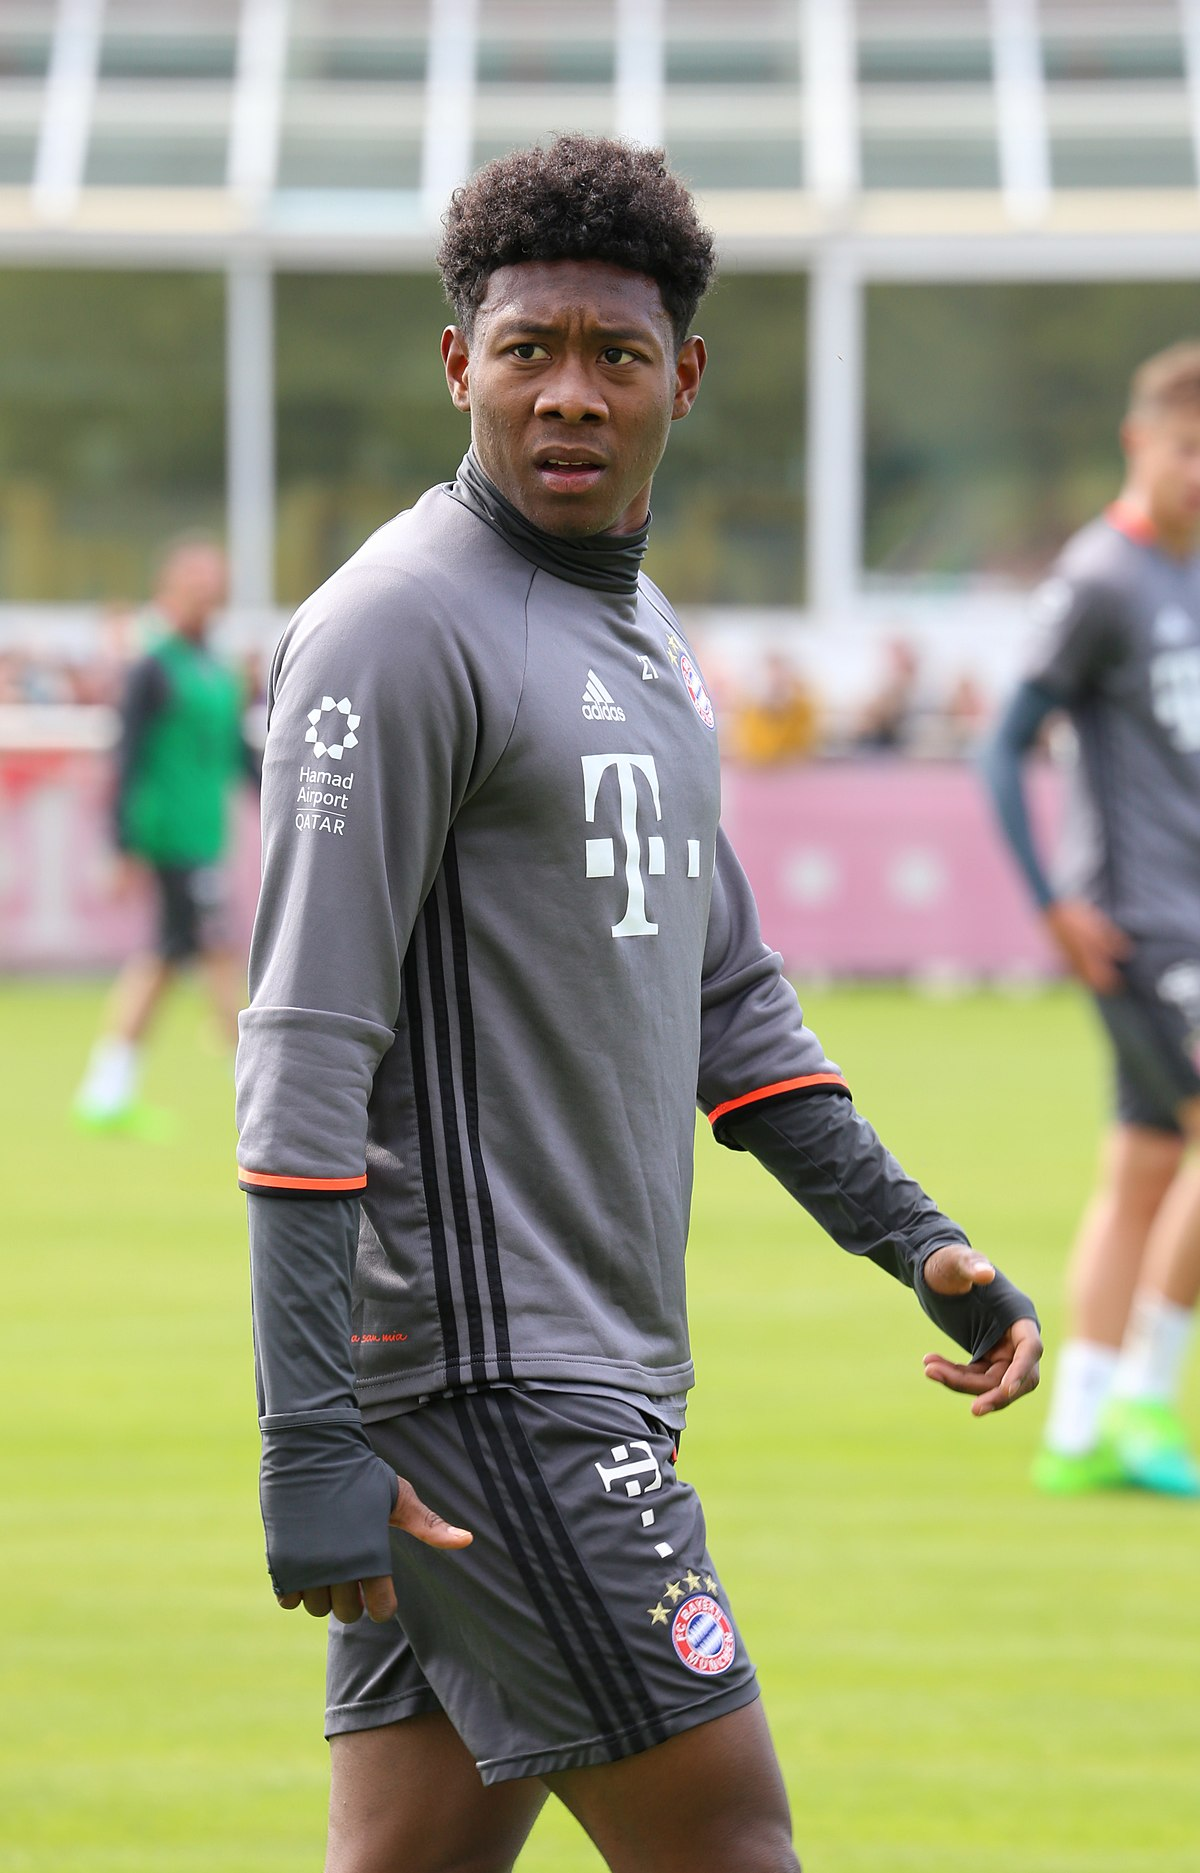 Mezclas de razas y etnias (mixed race people) 1200px-David_Alaba_Training_2017-05_FC_Bayern_Muenchen-3